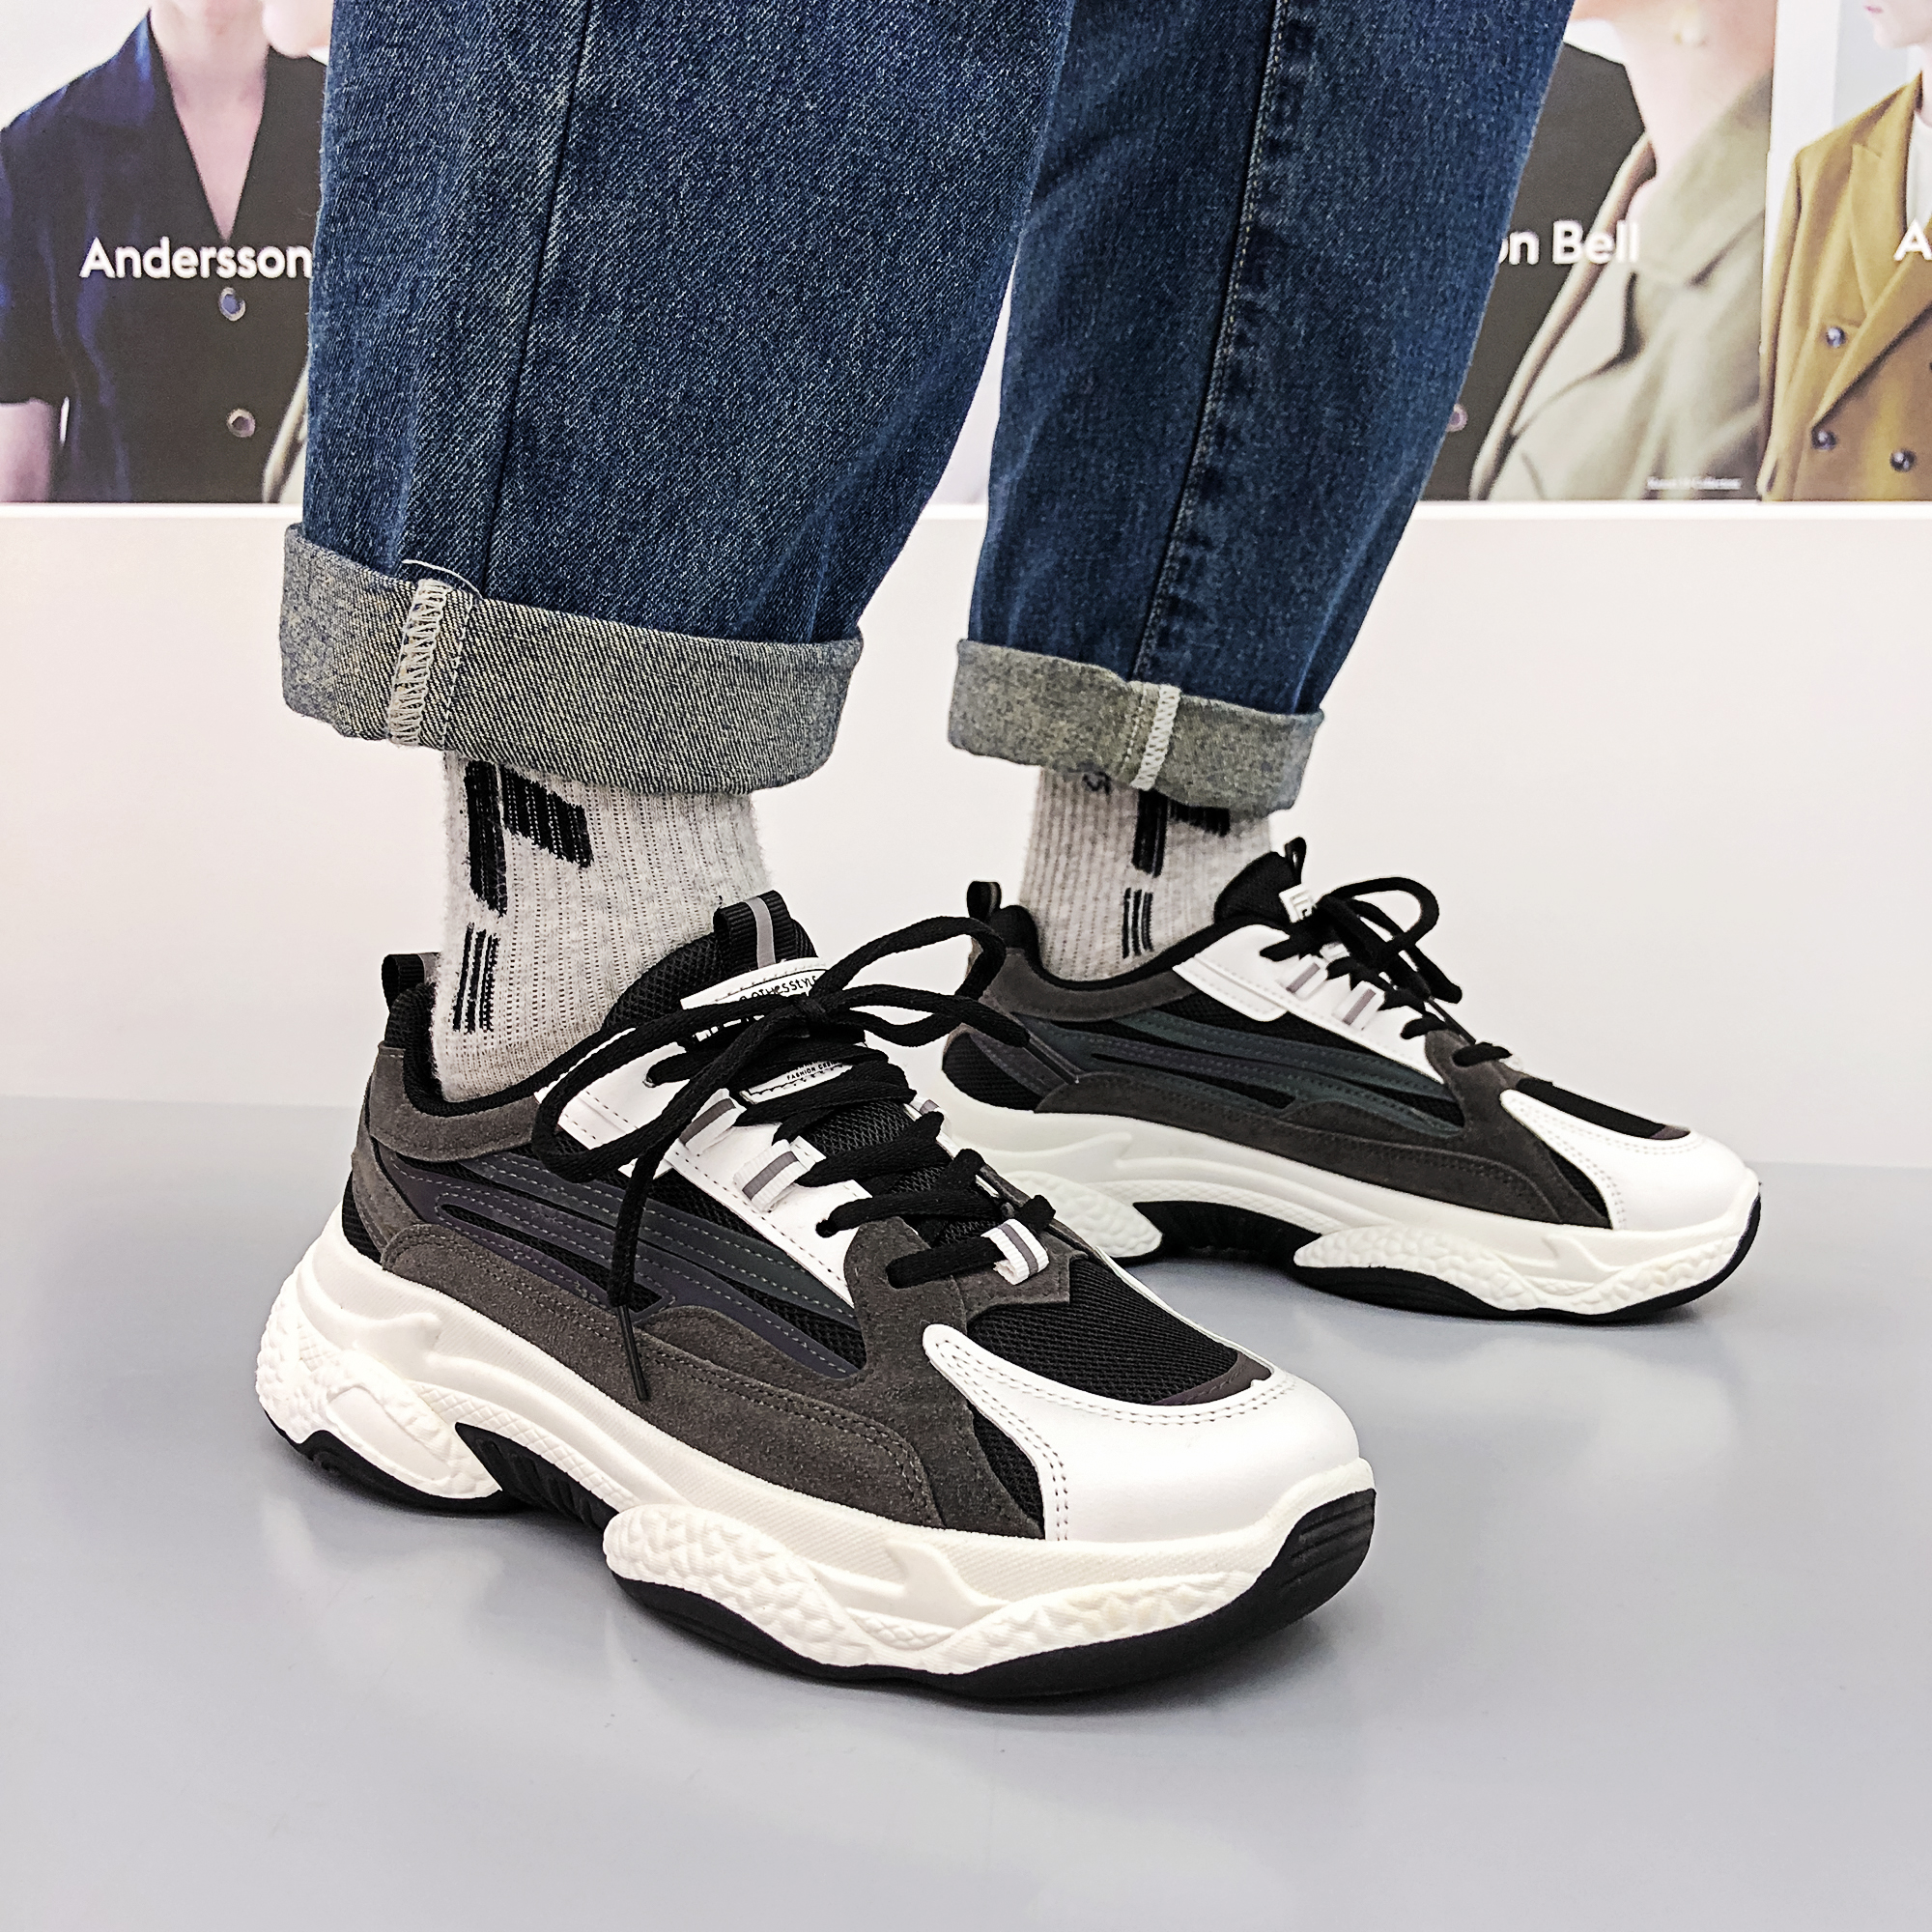 Fashion Luxury Men Kanye 700 Runner Walking Shoes 800 Chunky Sneakers Outdoor Sports Triple Designer Trainers